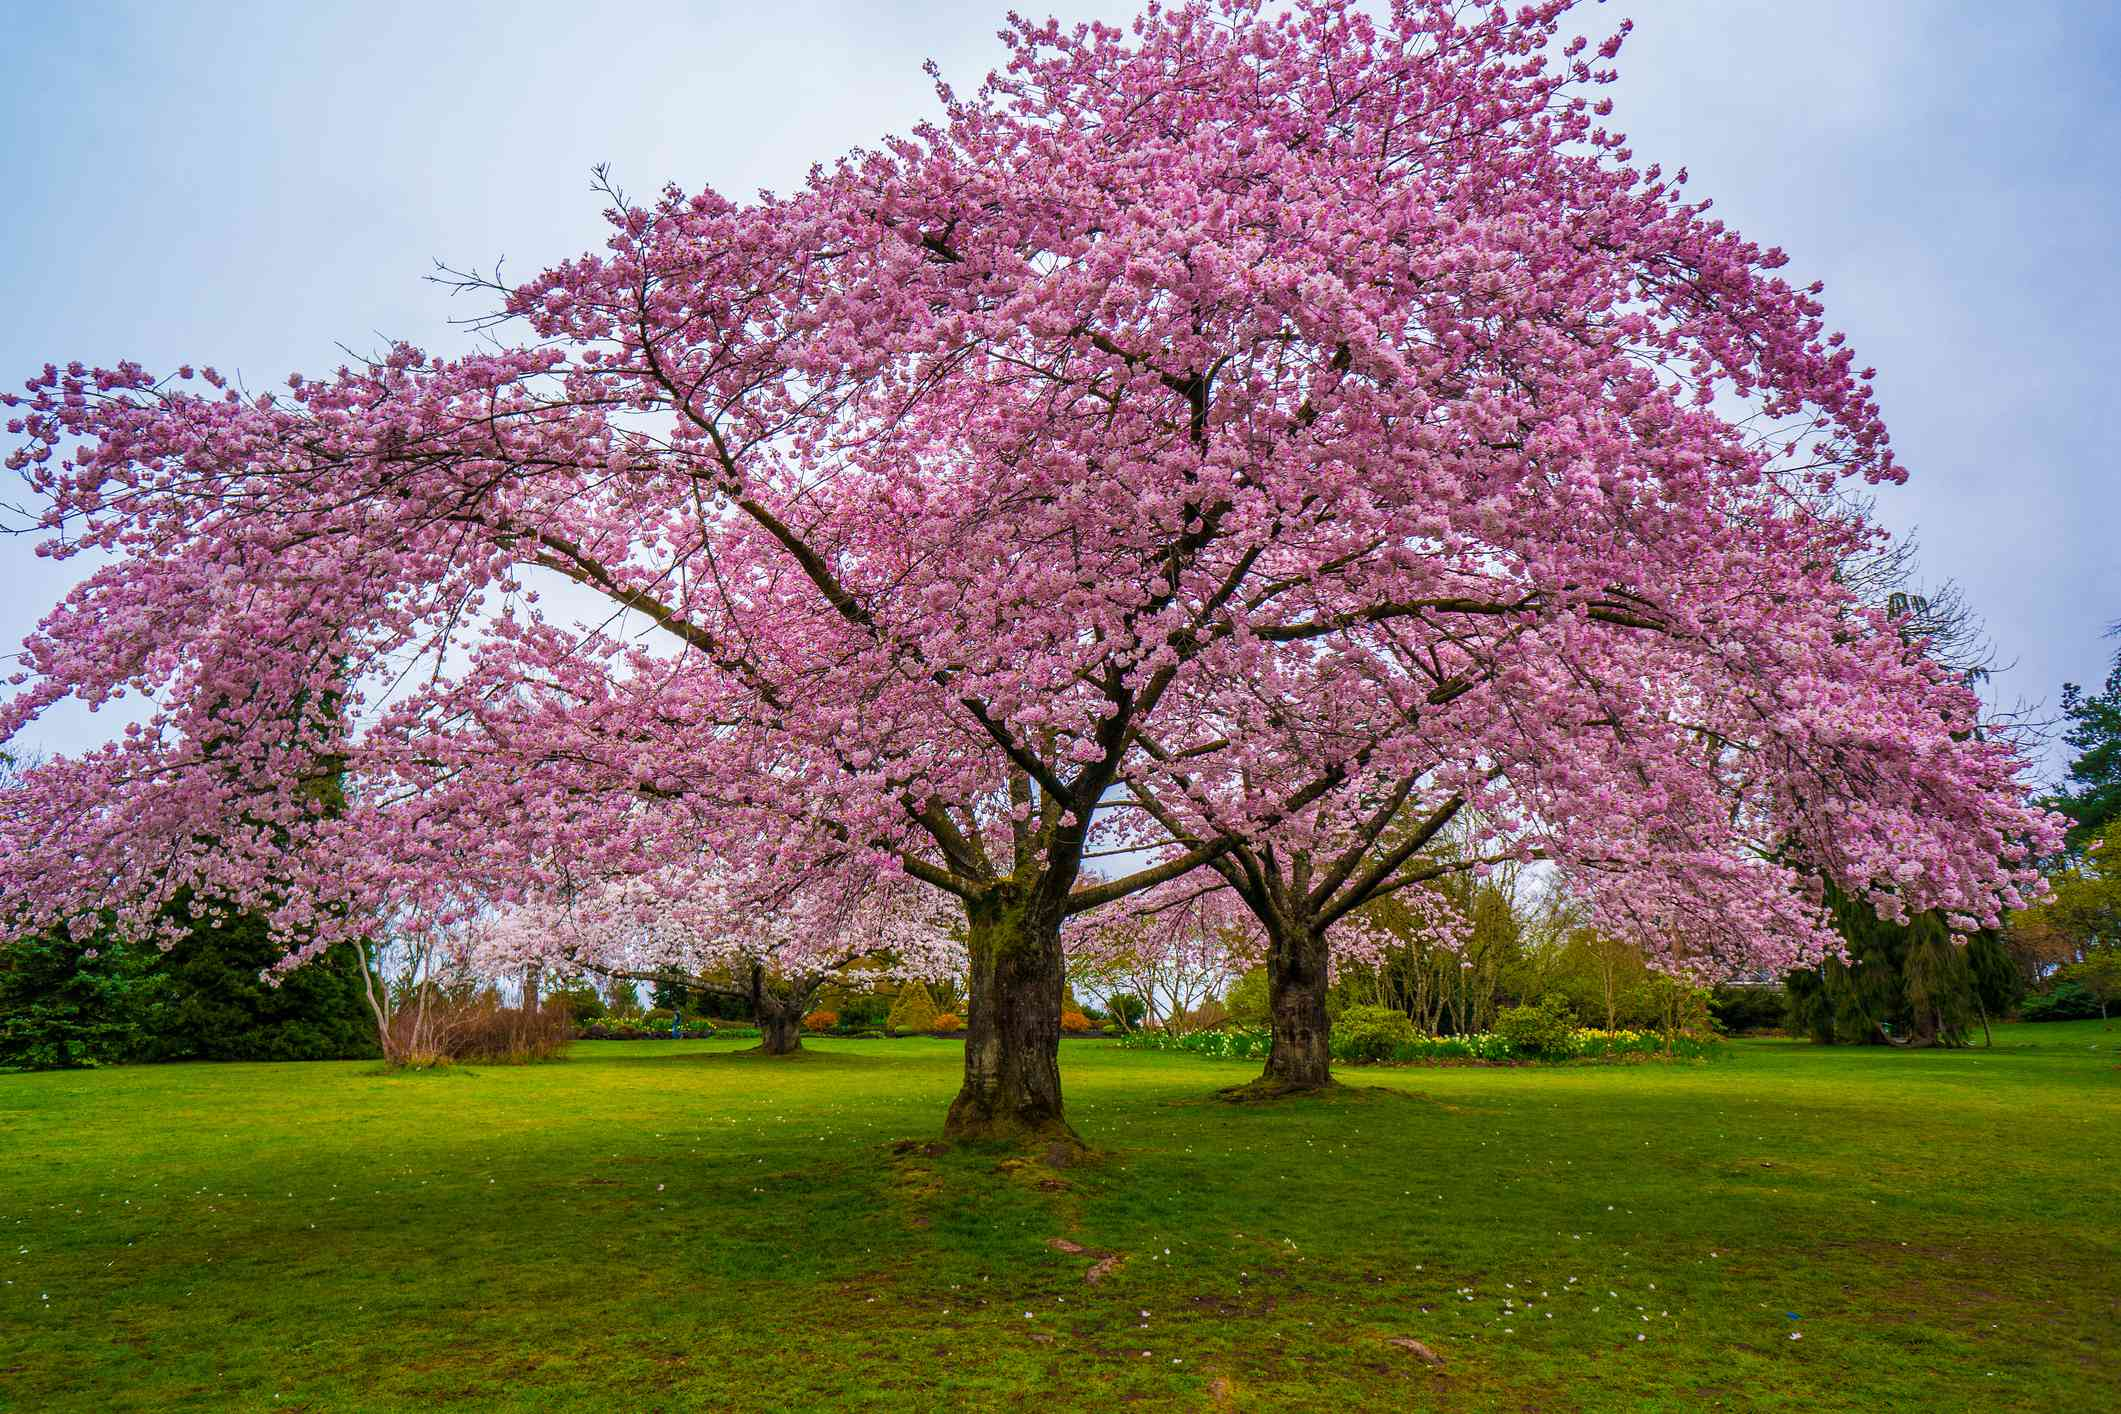 Large, bright pink cherry blossom trees in bloom on a large, wide lawn in Elizabeth Park, Vancouver under a blue sky